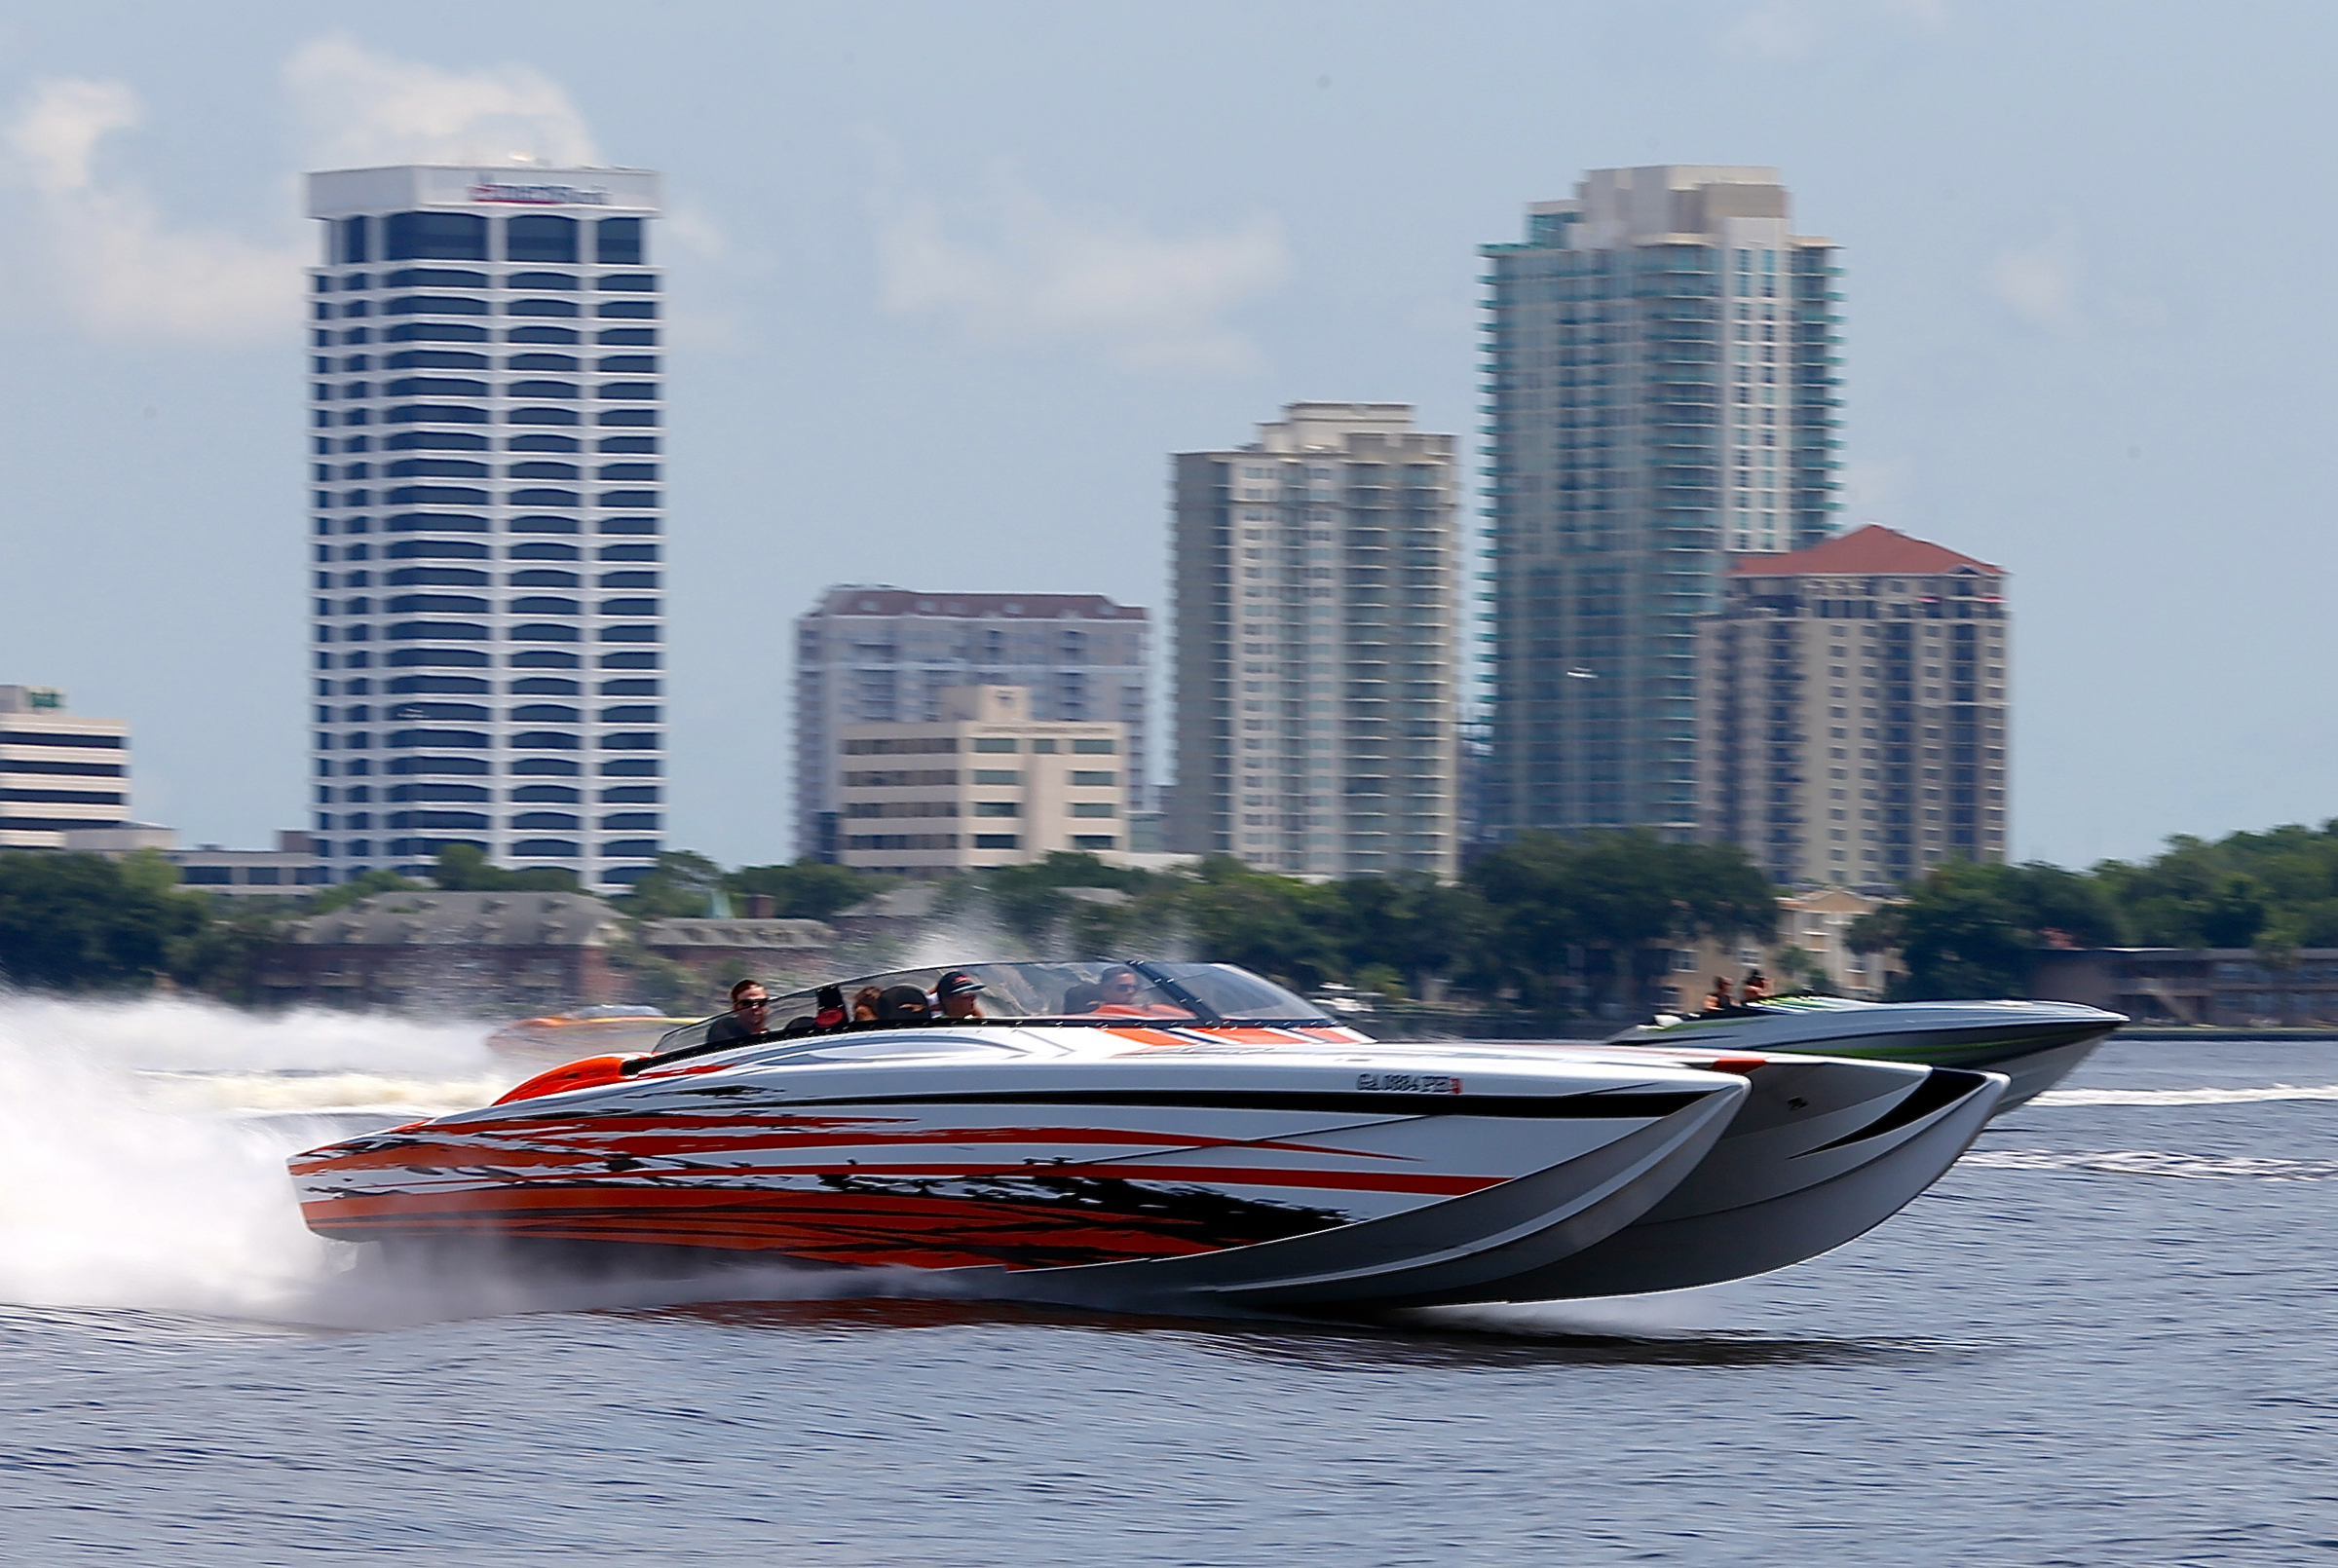 Meanwhile, some 900 miles south of Lake Erie a healthy contingent of go-fast powerboat enthusiasts took to the water on the St. Johns River in Florida during the Jacksonville River Rally Fun Run. Photo by Pete Boden. (https://www.facebook.com/Shoot-2-Thrill-Pix-130528070292399/)